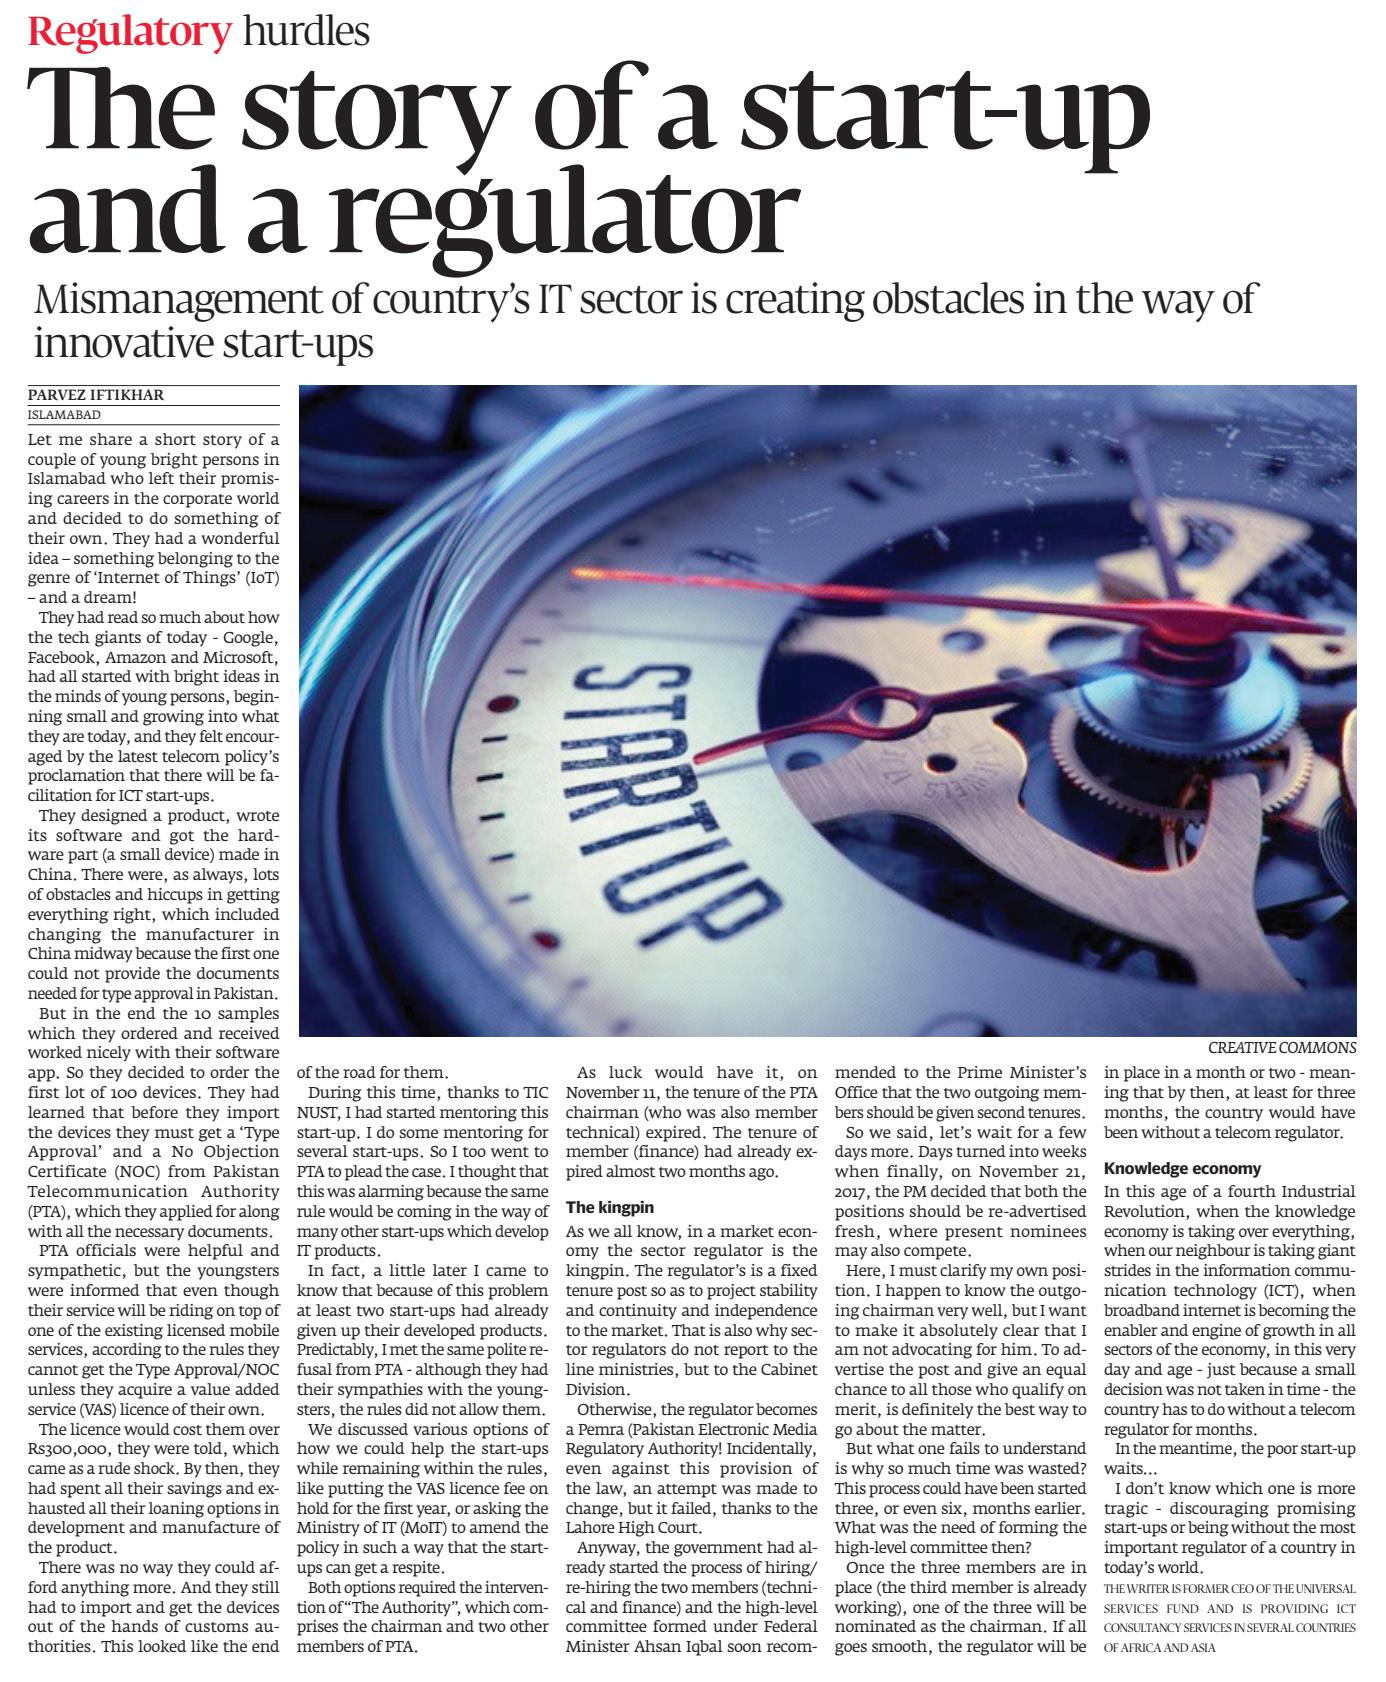 PI- Express Tribune -The Story of a startup & a regulator 25dec17